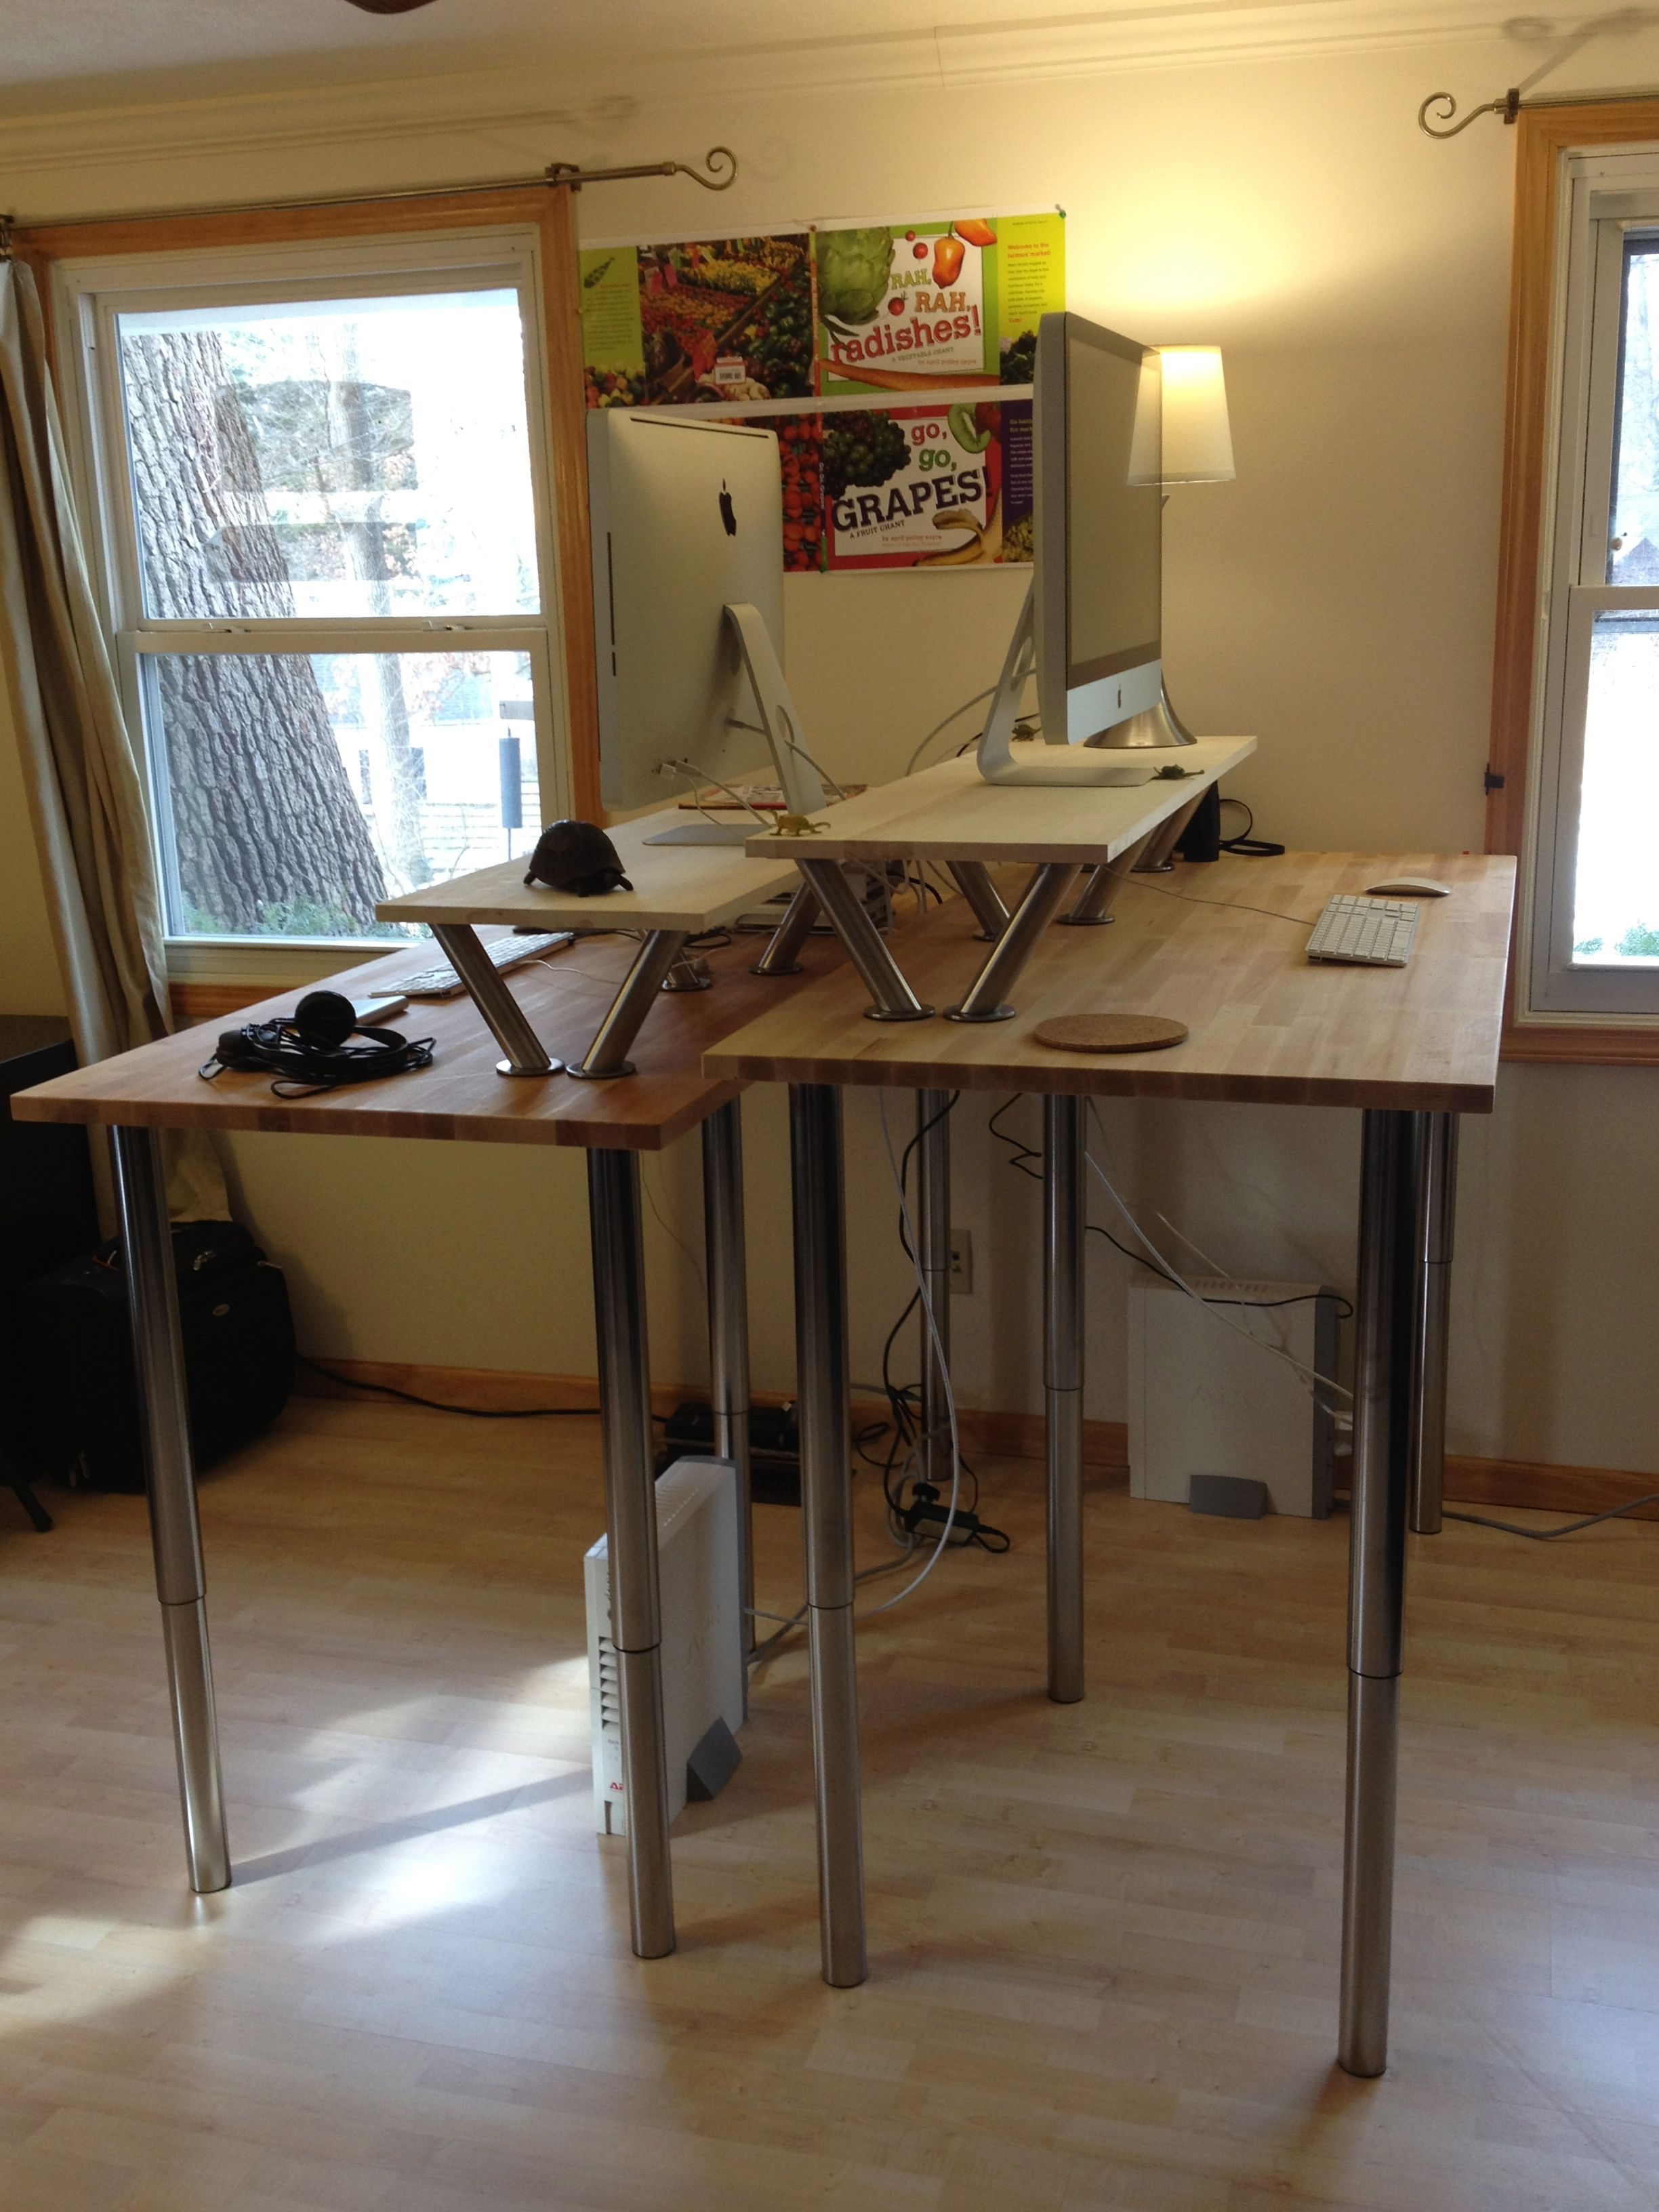 Our Two Standing Desks Customized For Proper Working Height Diy Standing Desk Ikea Standing Desk Tall Desk